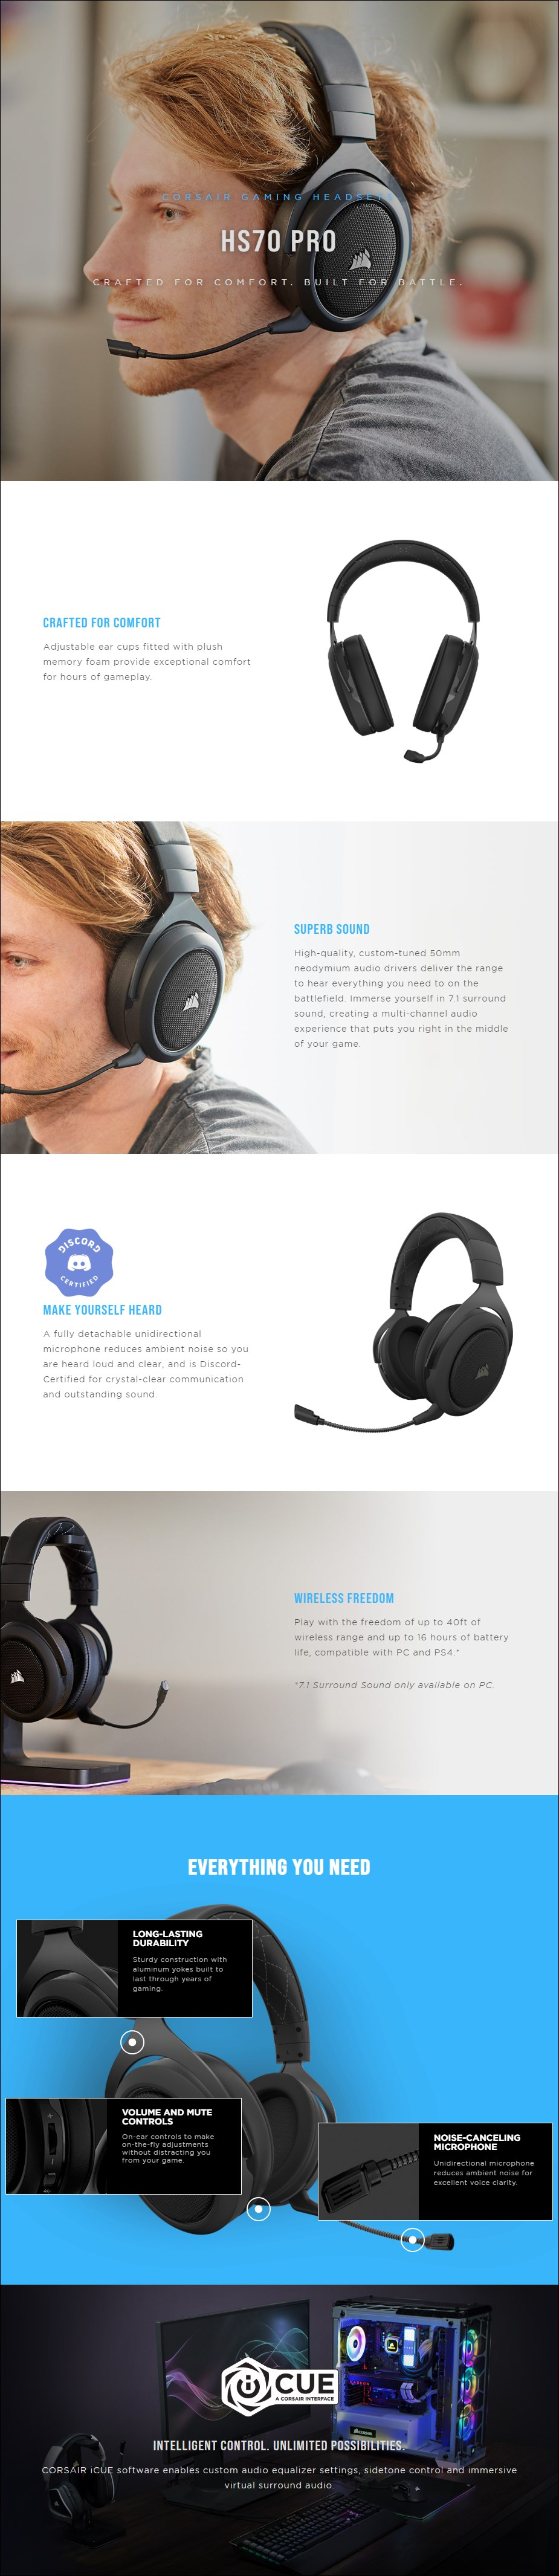 Corsair HS70 PRO 7.1 Surround Wireless Gaming Headset - Carbon - Overview 1